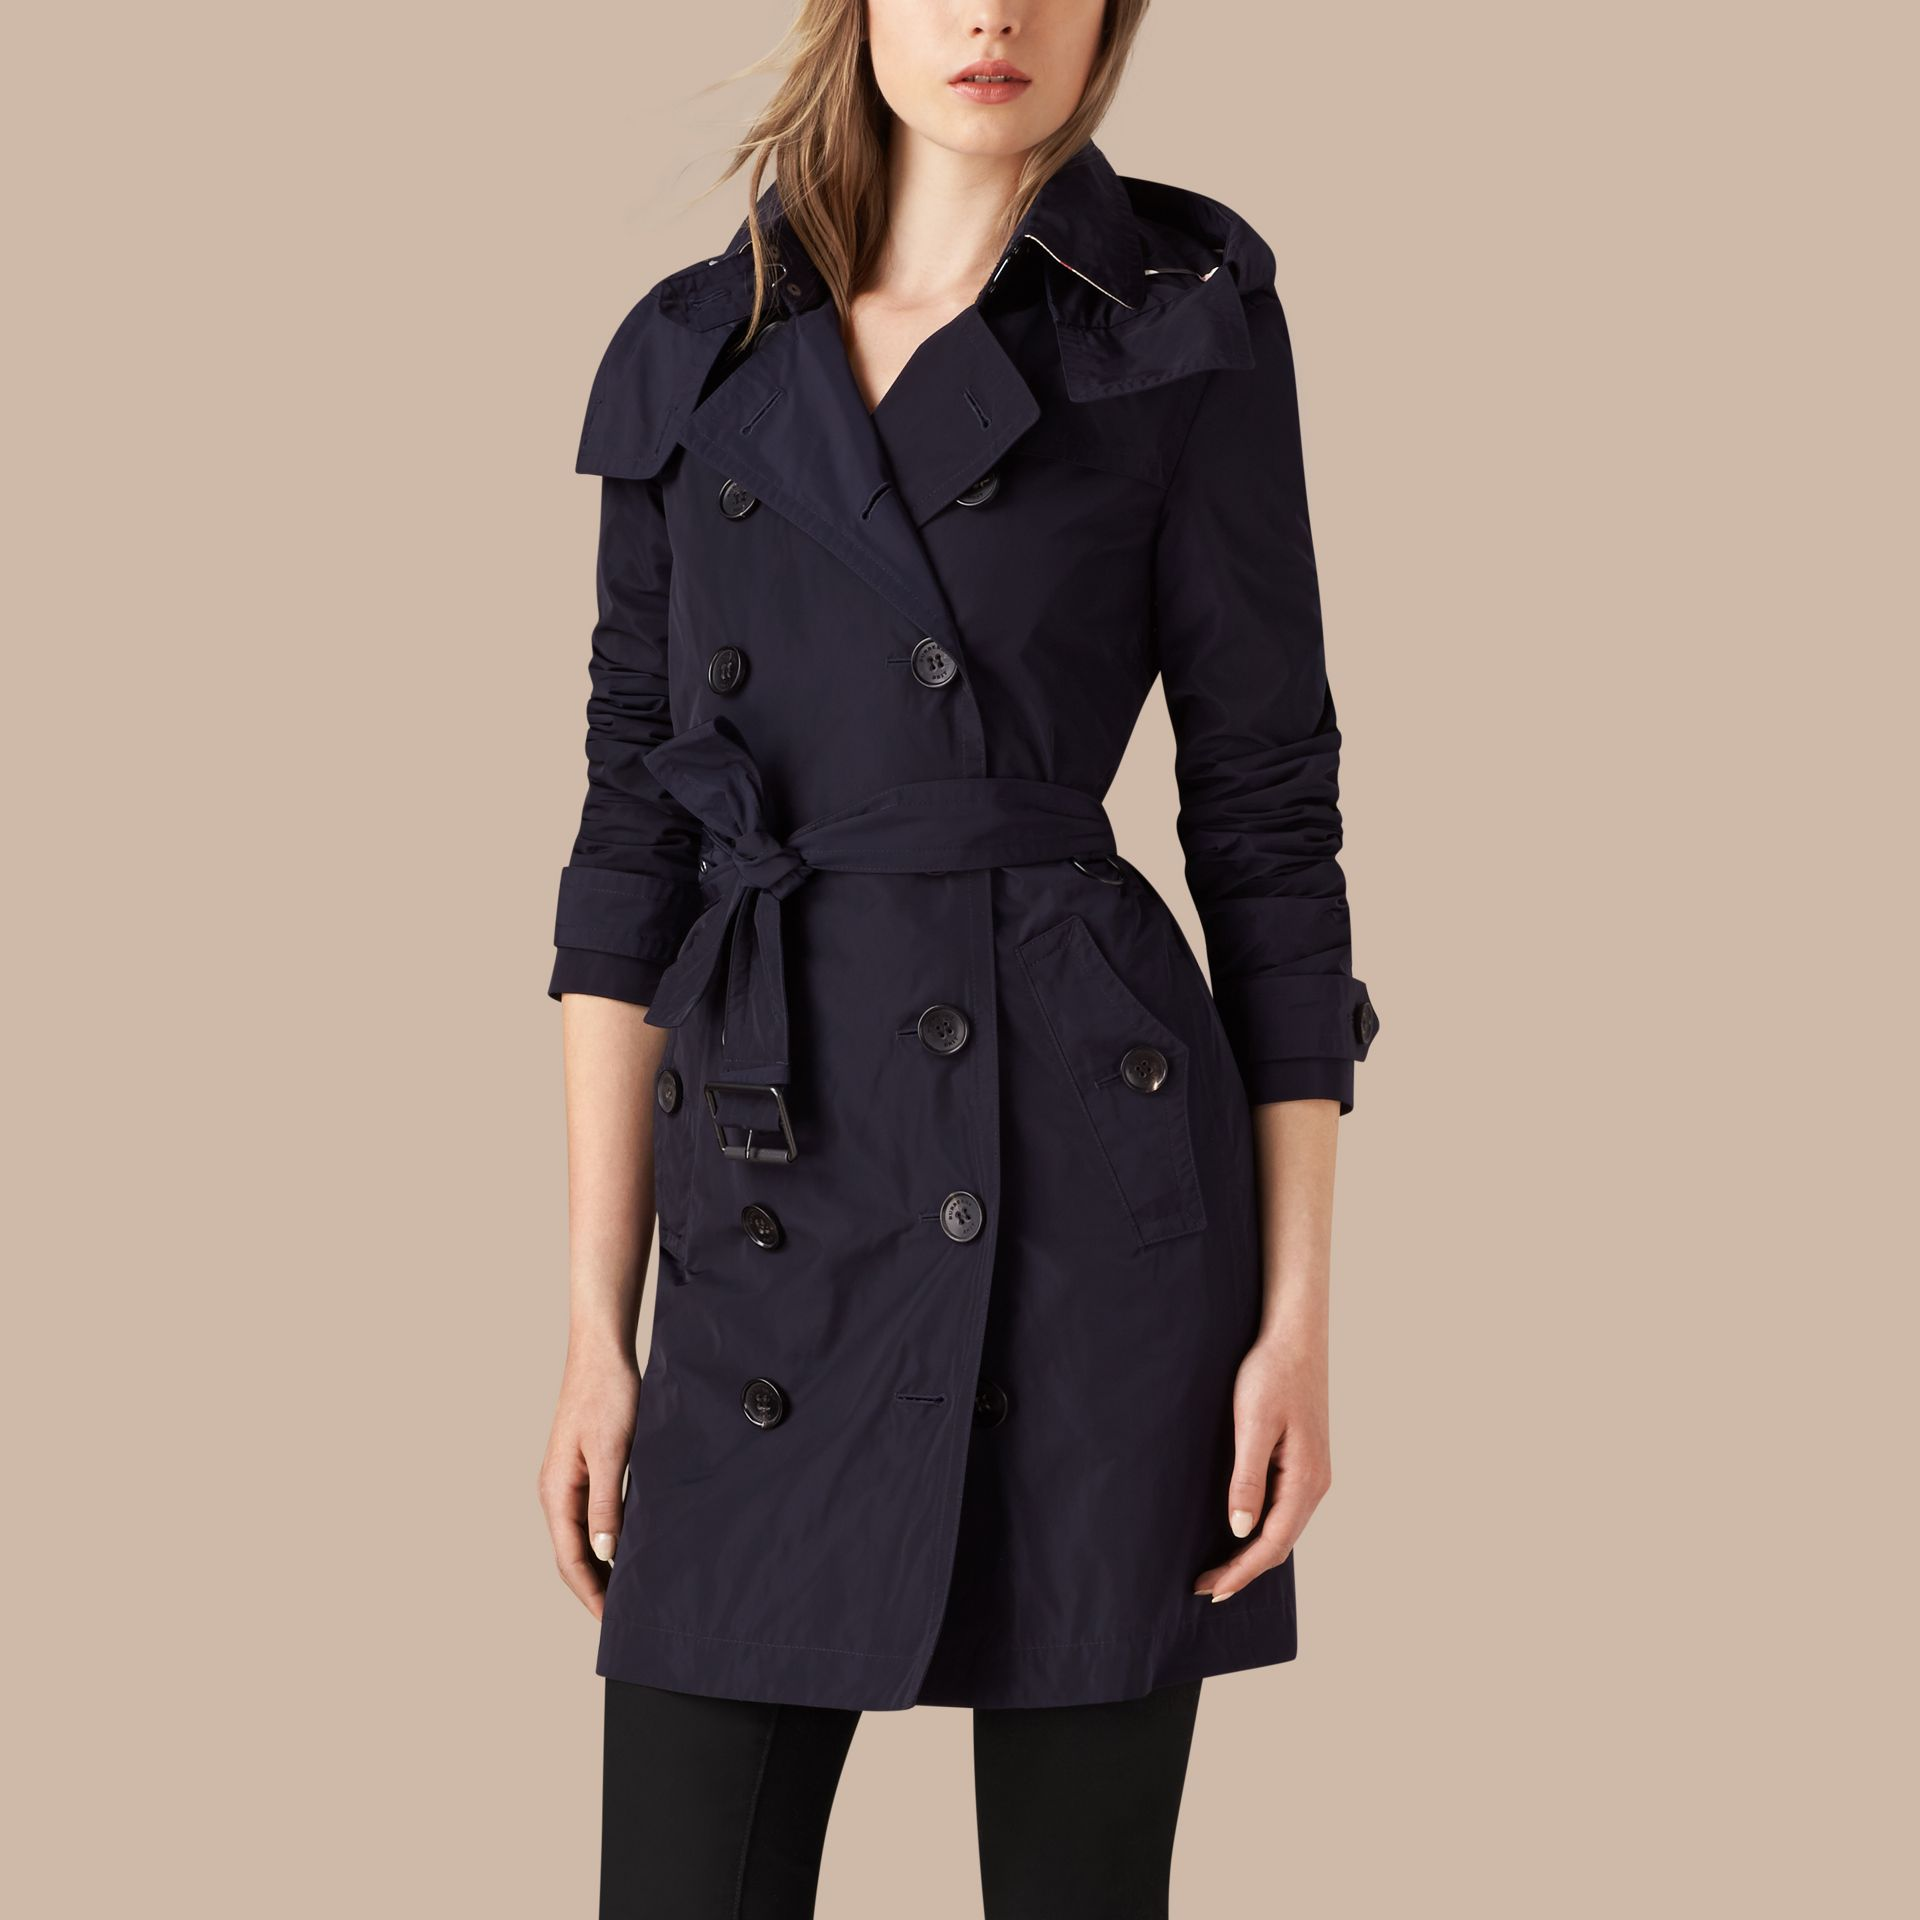 Taffeta Trench Coat with Detachable Hood Navy - gallery image 4